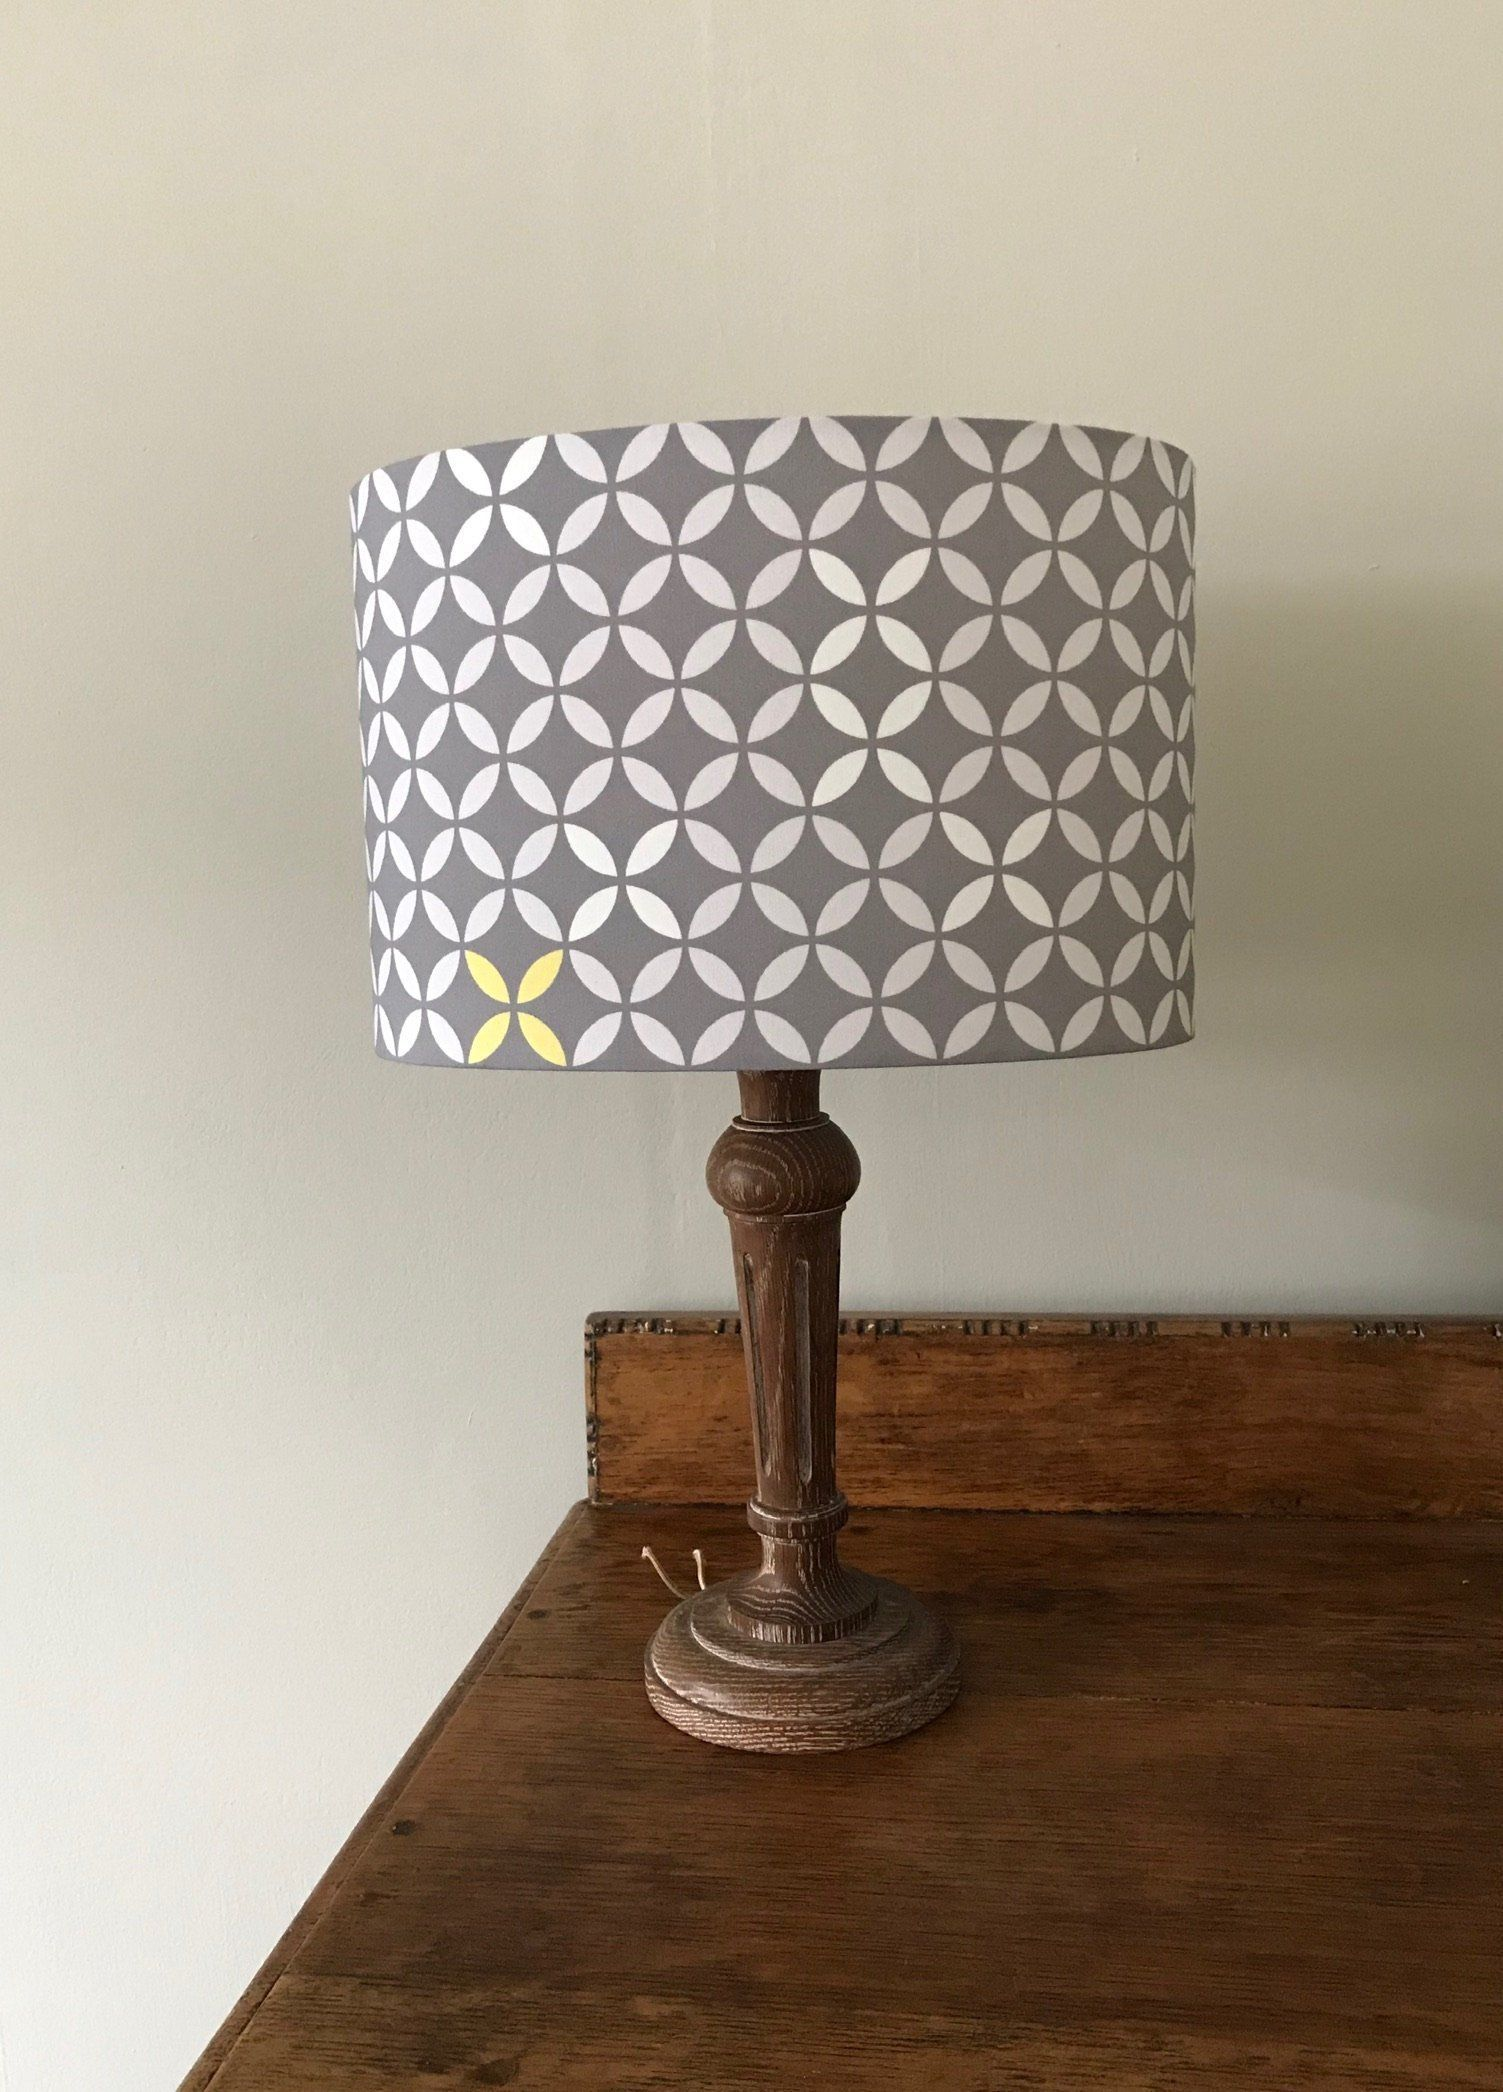 30cm Lampshade Grey White Yellow Geometric Fabric Oval 30cm Scandinavian Style Fabric Geometric Fabric Low Energy Light Bulbs Oval Table